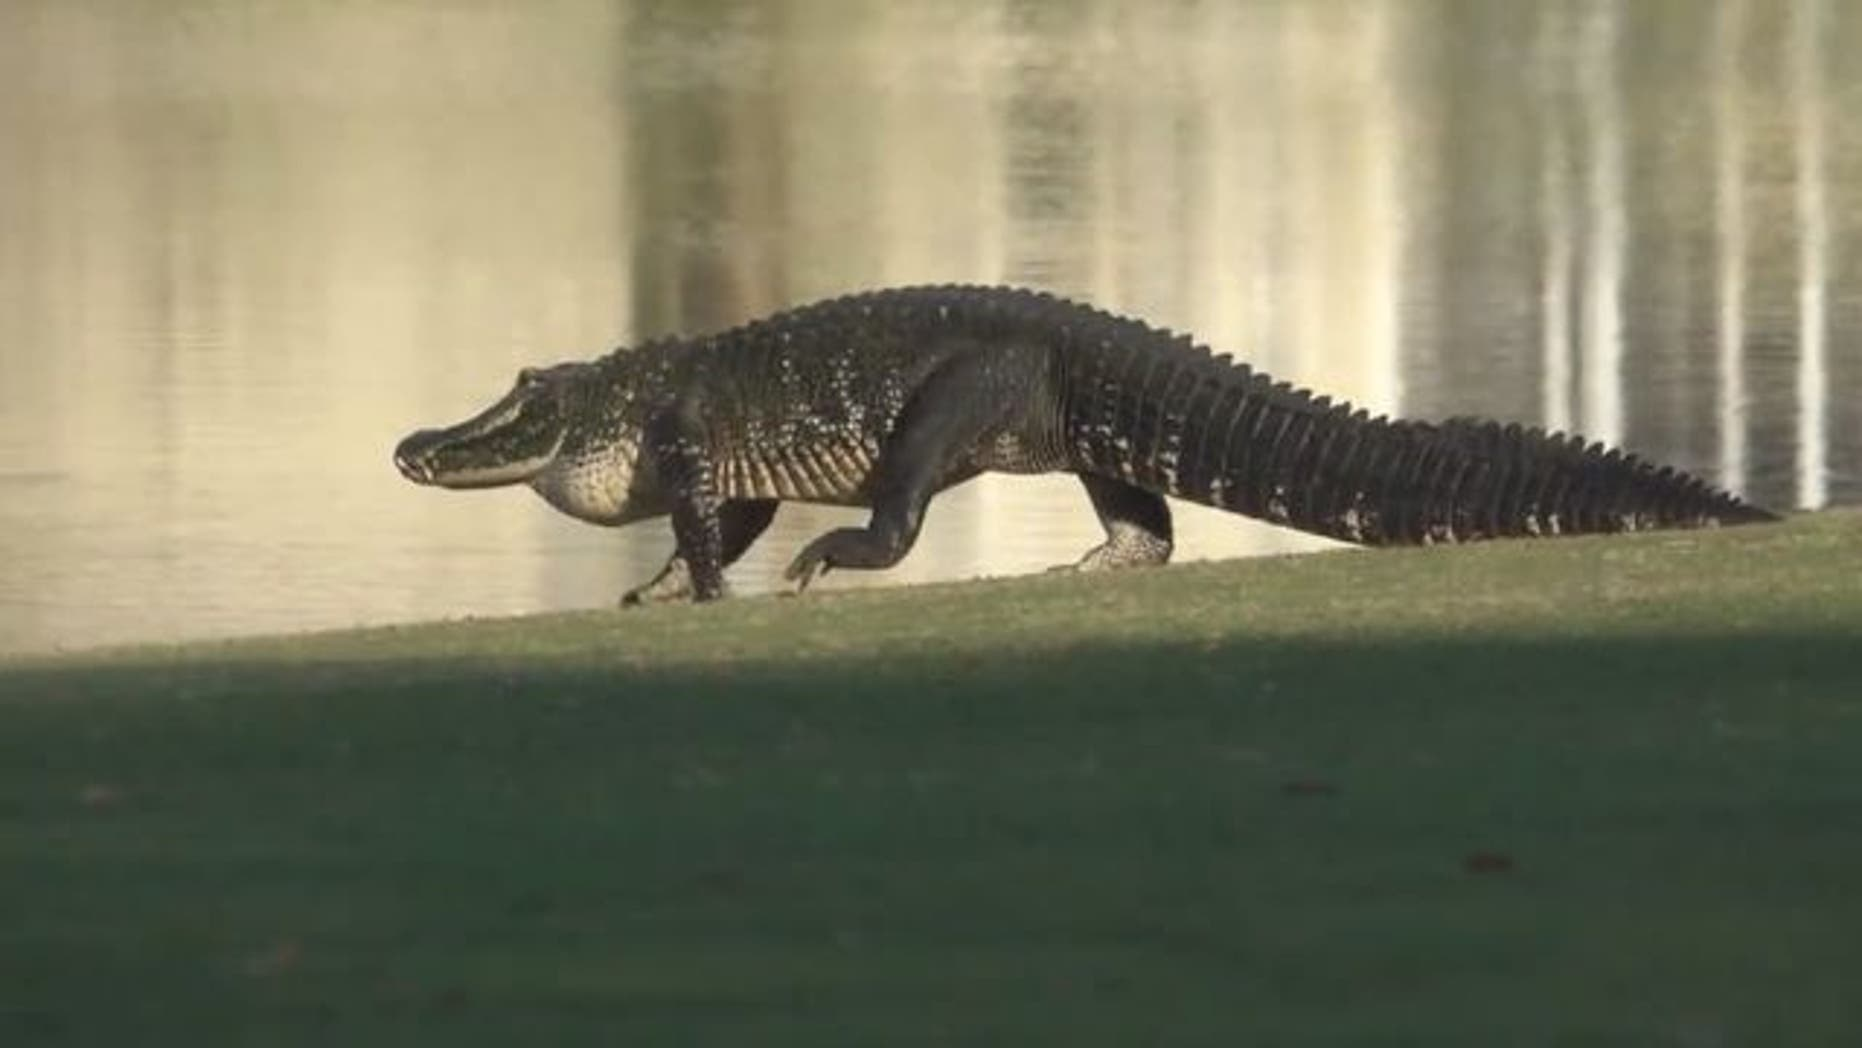 One of the gators on parade.